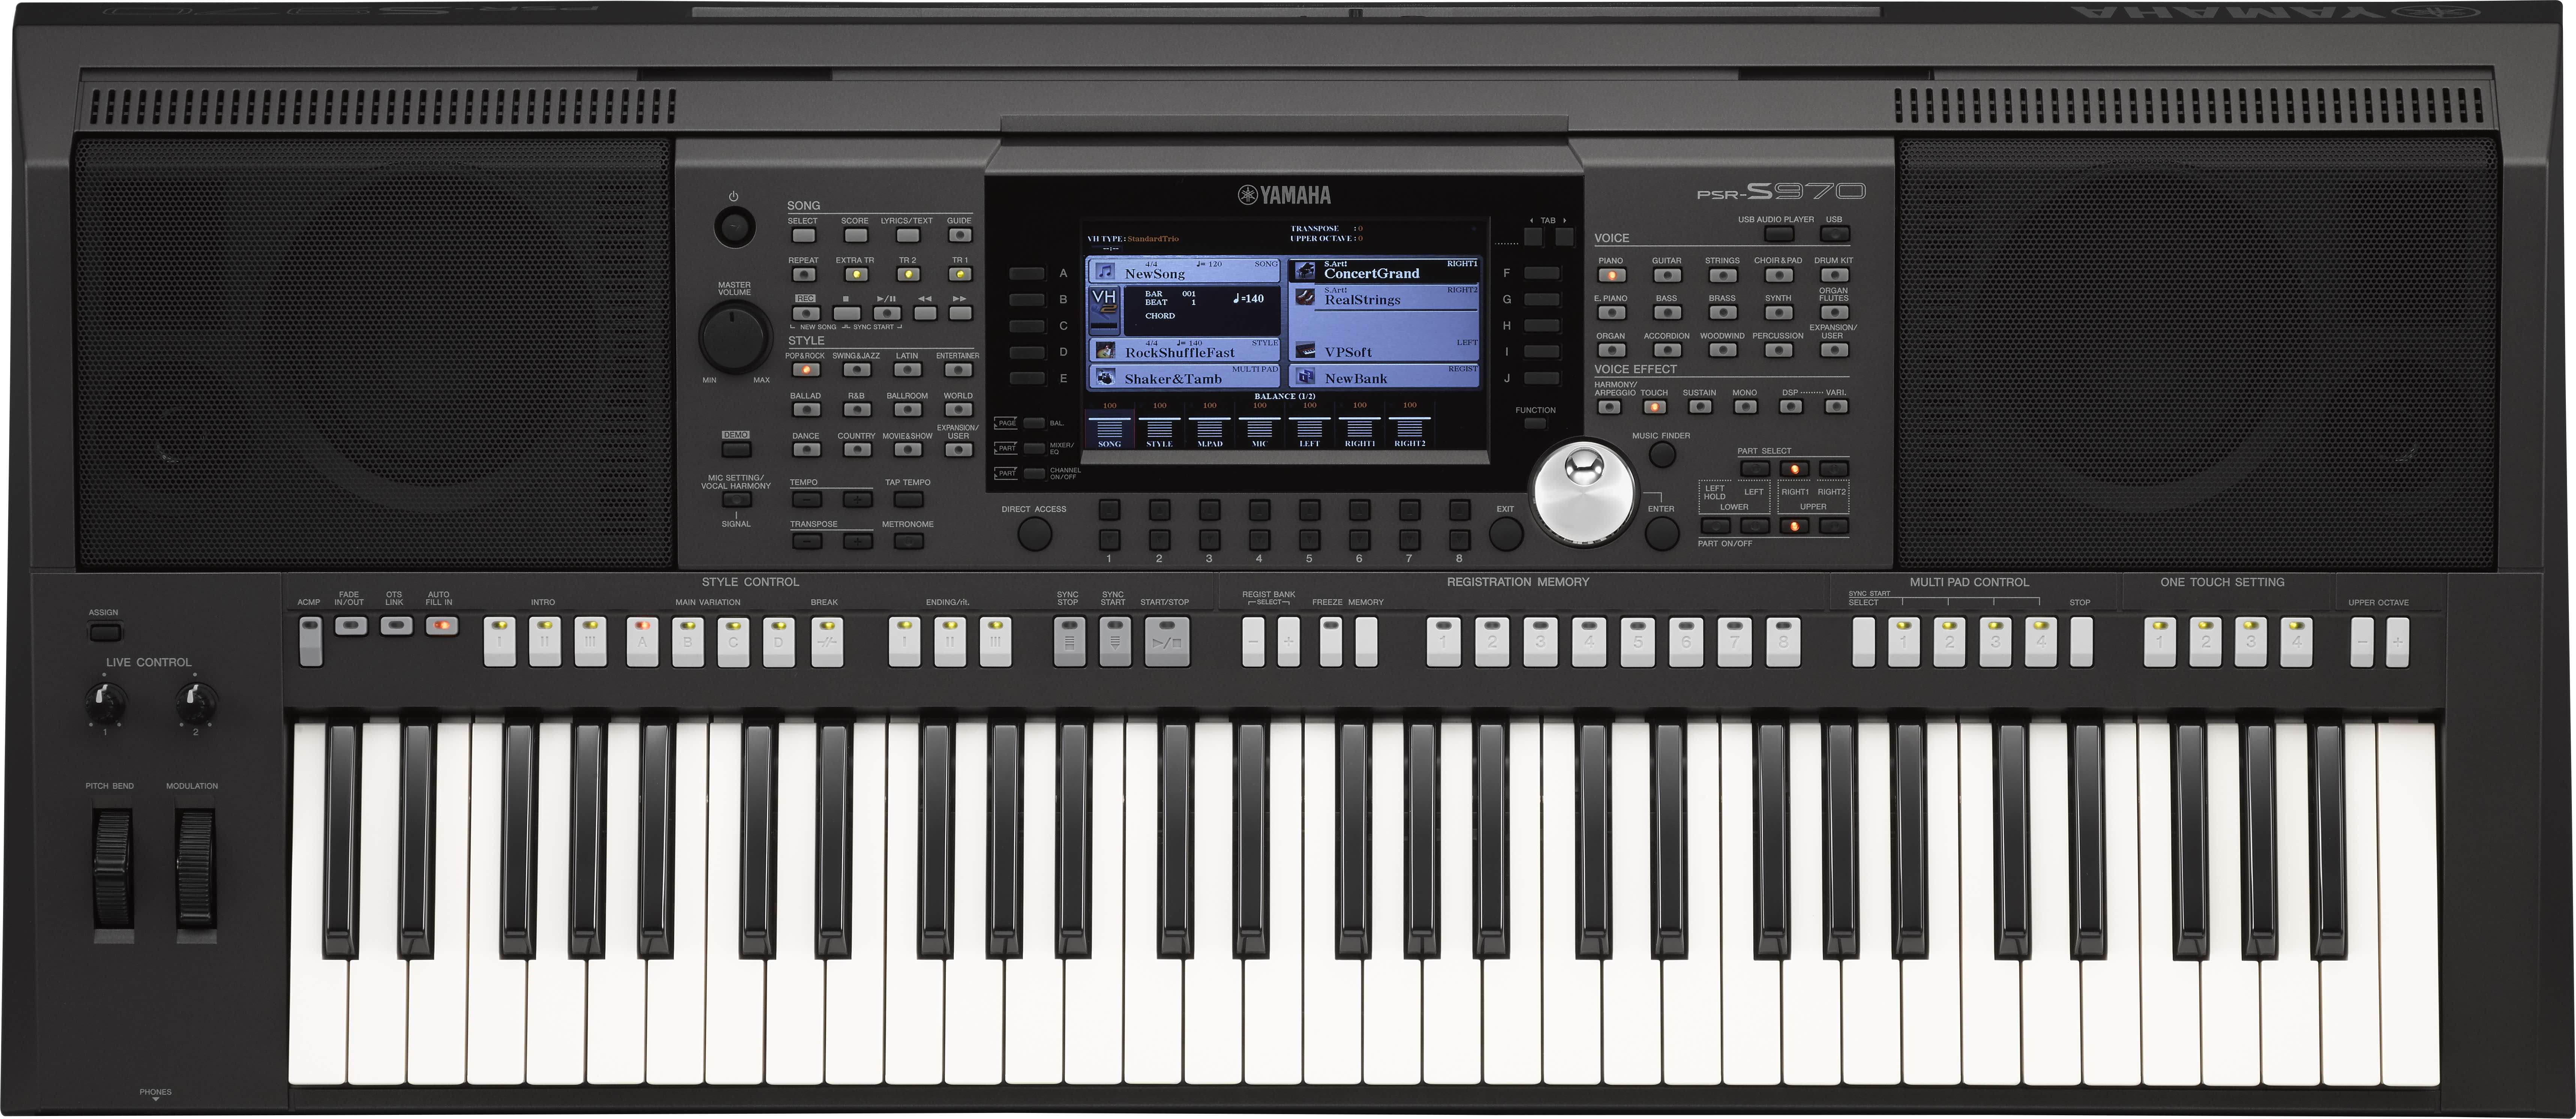 How To Record Your Music On Yamaha Keyboard